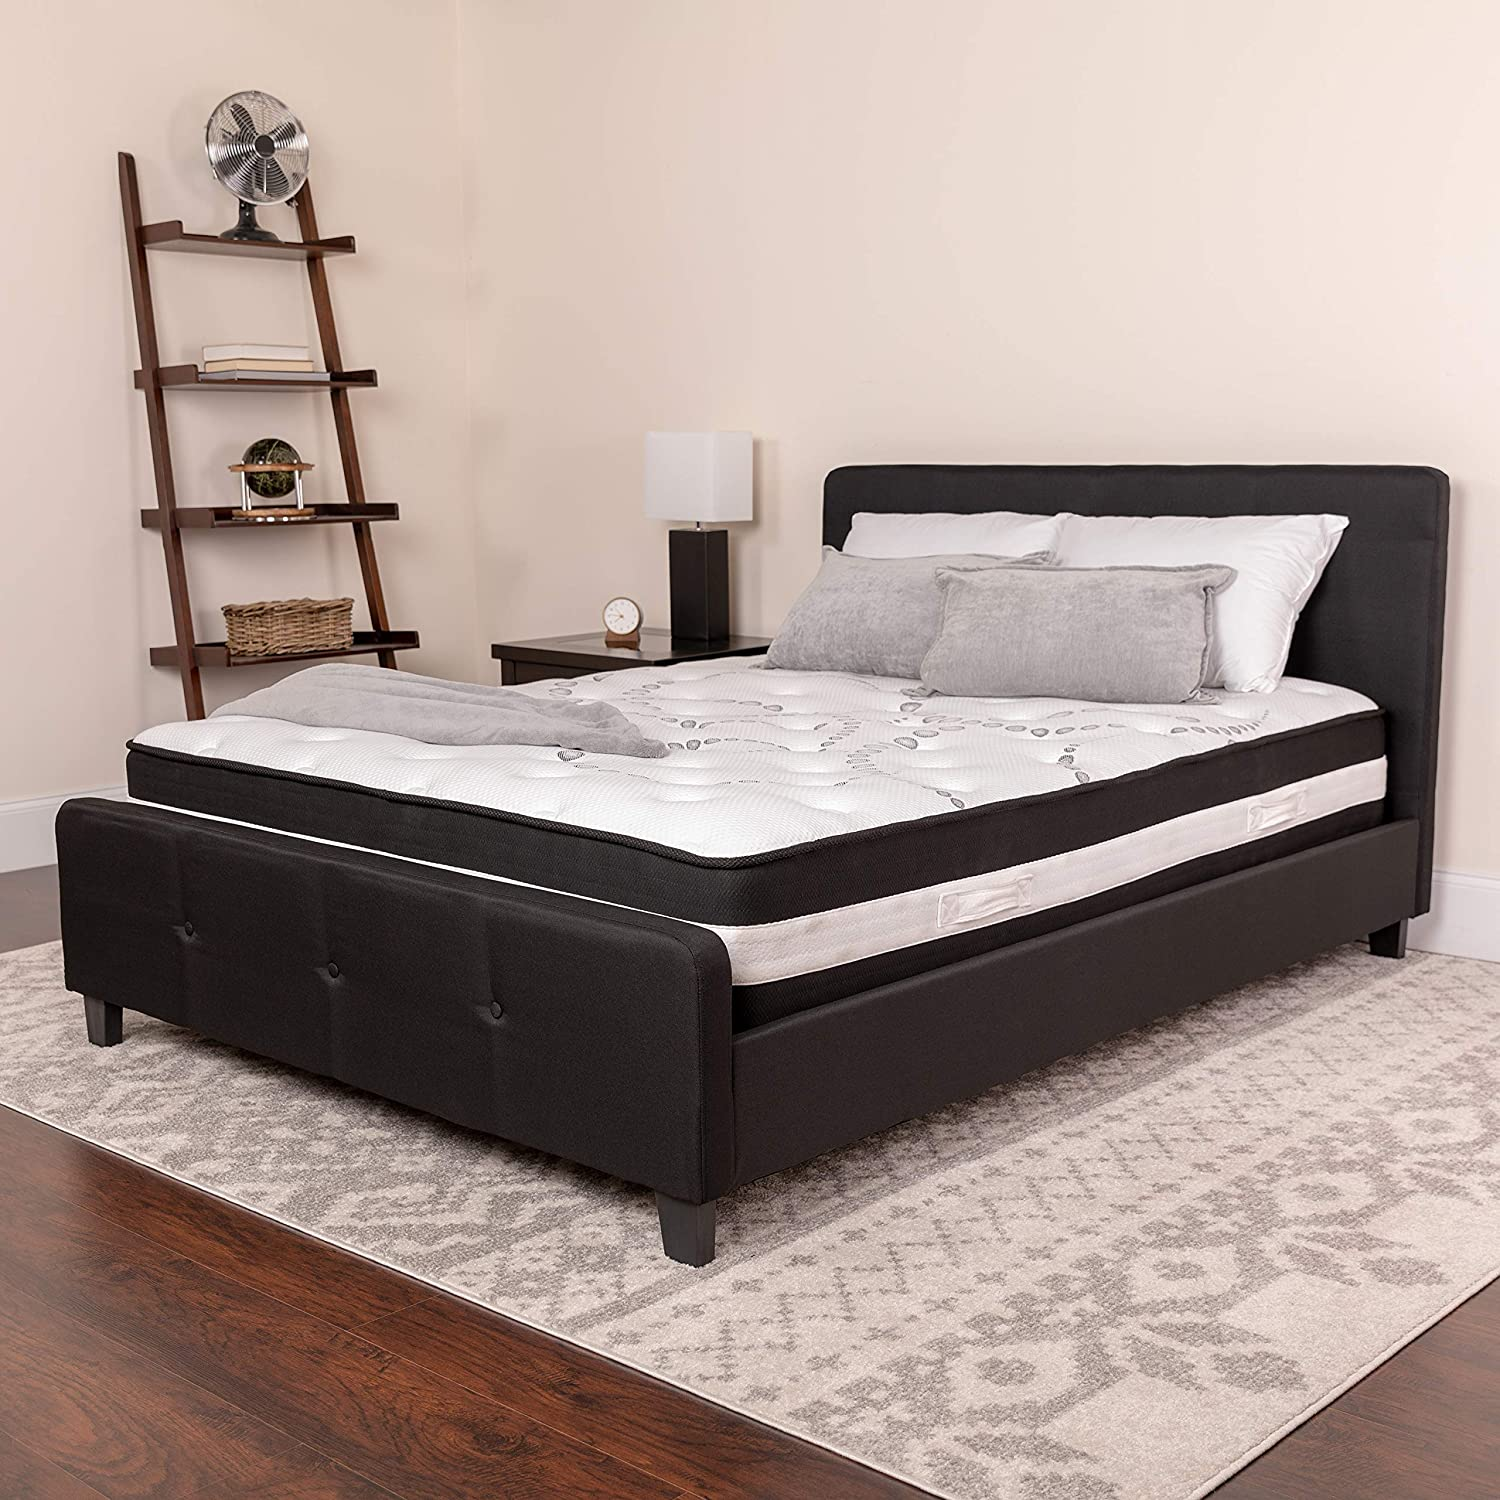 Top 10 Best king size mattresses